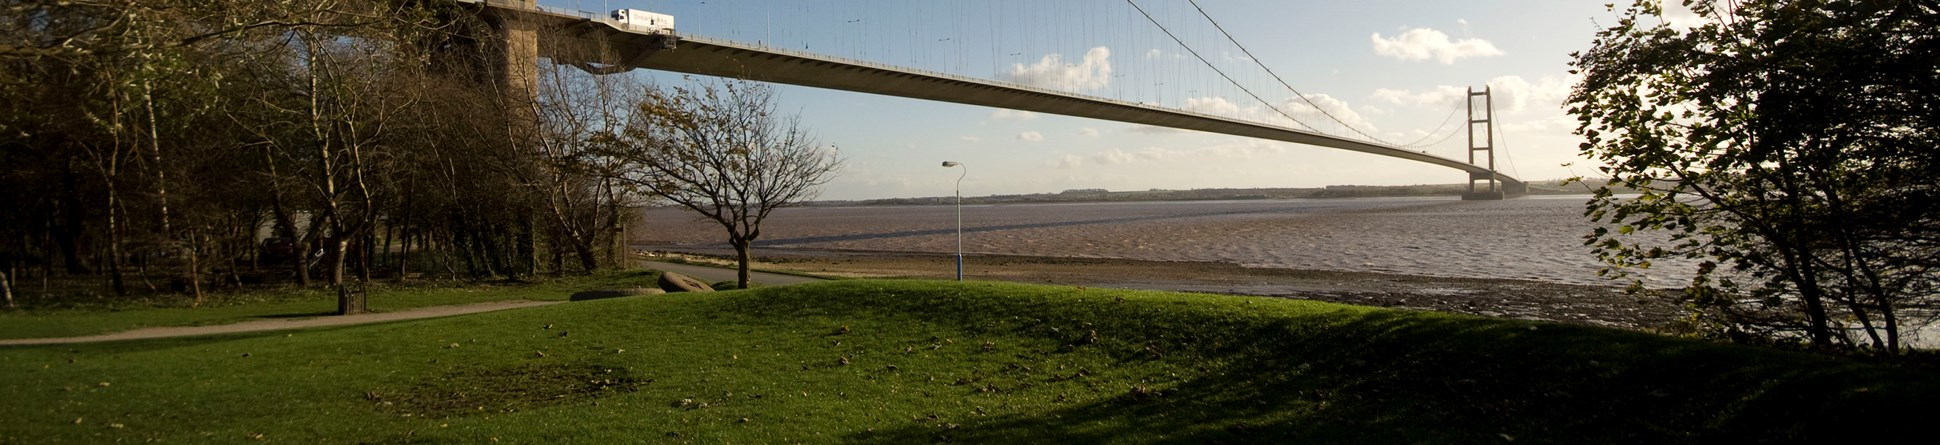 The Humber bridge is now Grade I listed